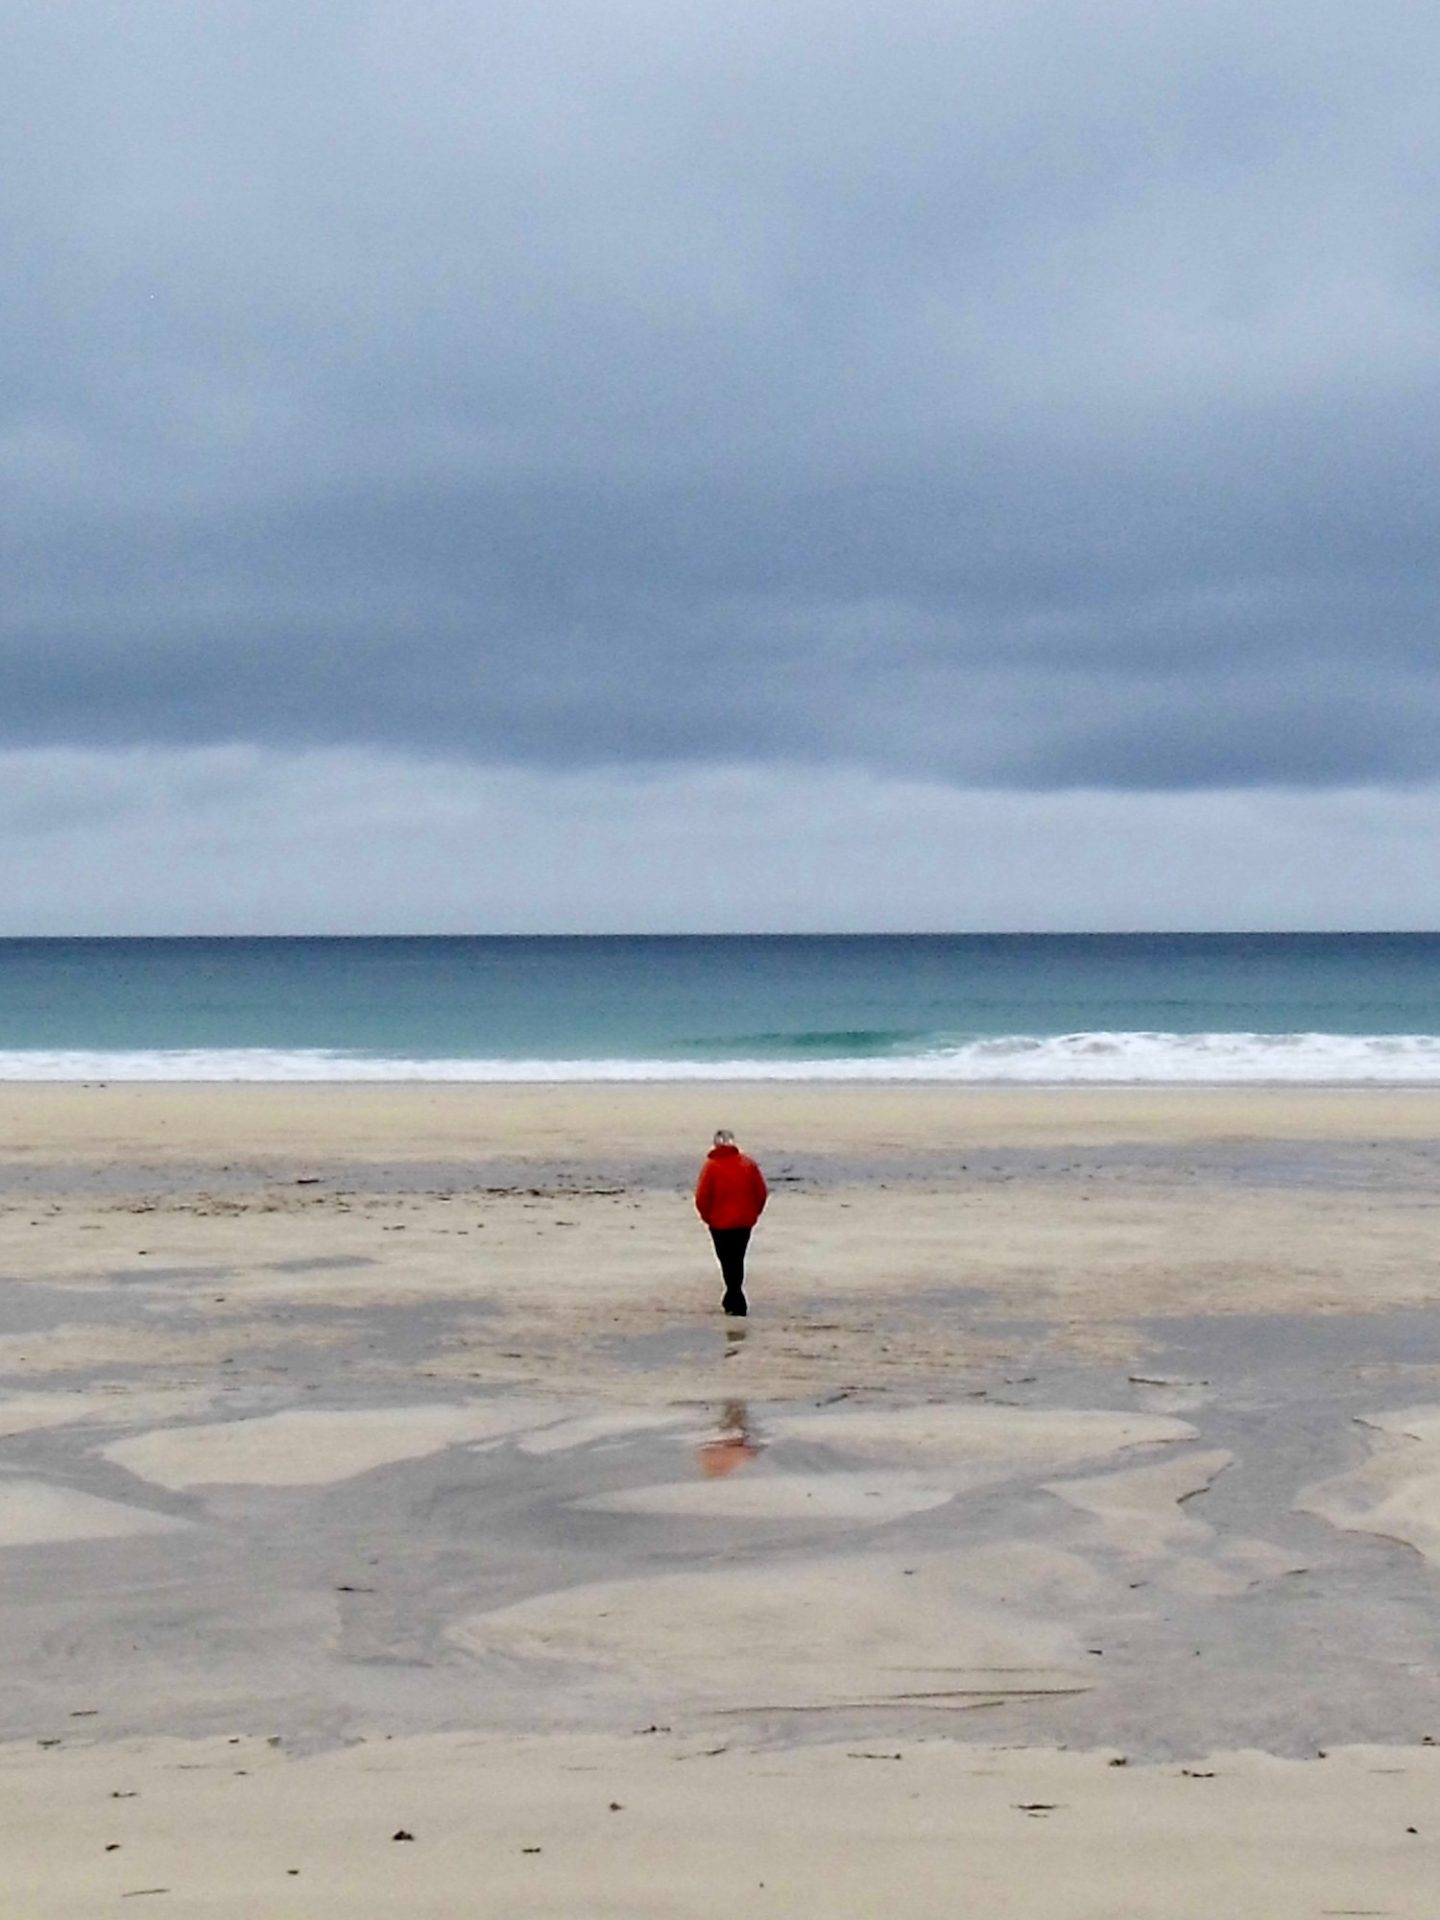 Social distancing: Man alone on wide beach, Isle of Lewis, Scotland.